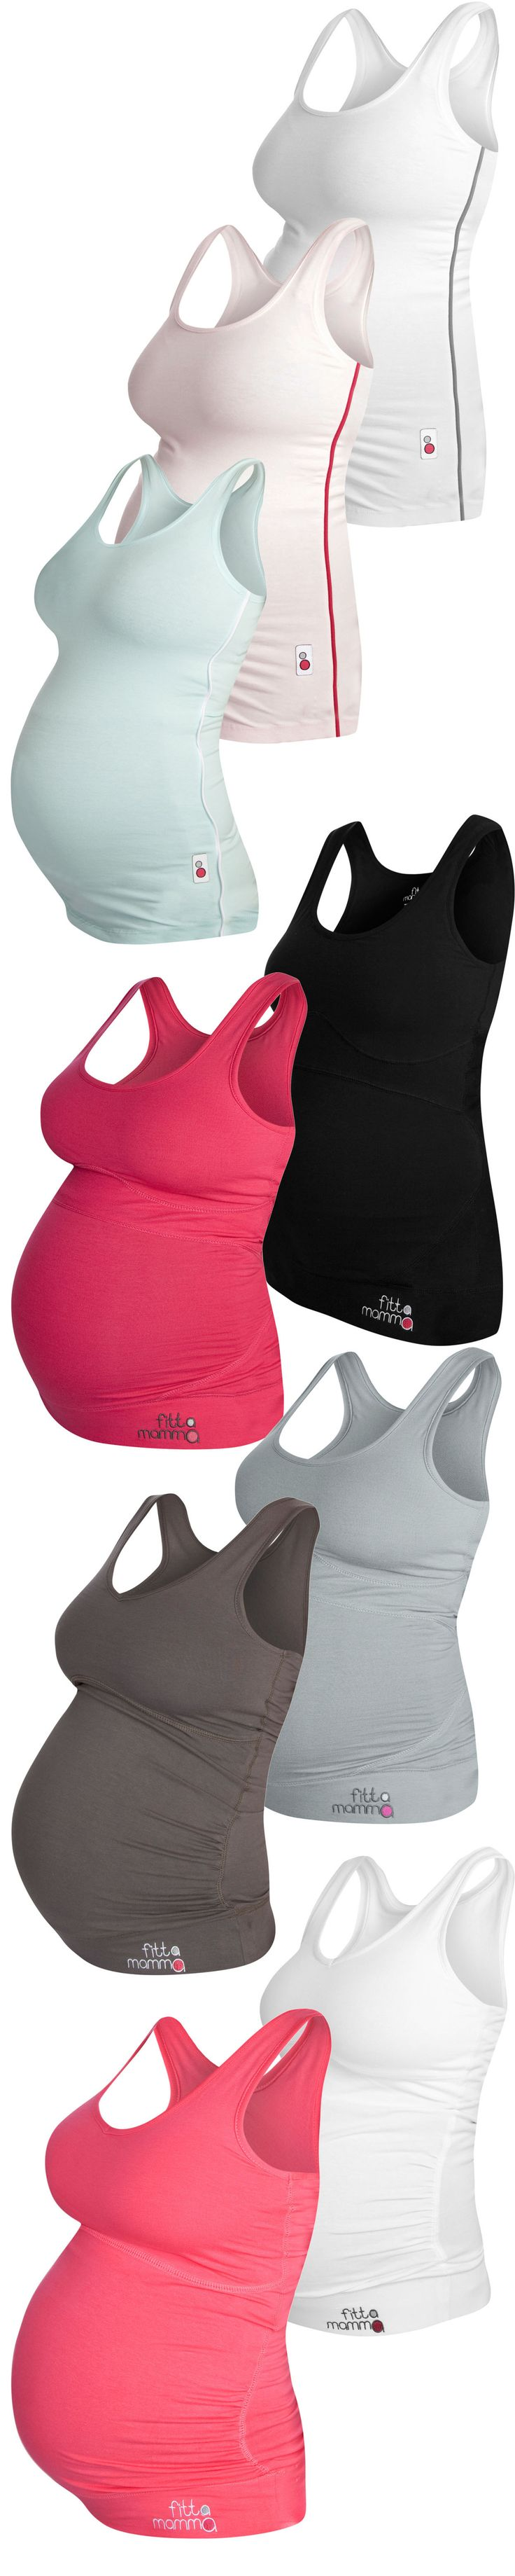 Gorgeous maternity workout clothes Designed to look fantastic and support your bump, our tops are super-stretchy. Choose one now, it will look good after baby is born too! Check out the website to see more maternity activewear, mix and match across the range for your workout wardrobe. Pair with our supportive leggings or capis for exercise or simply enjoy relaxing in comfort.